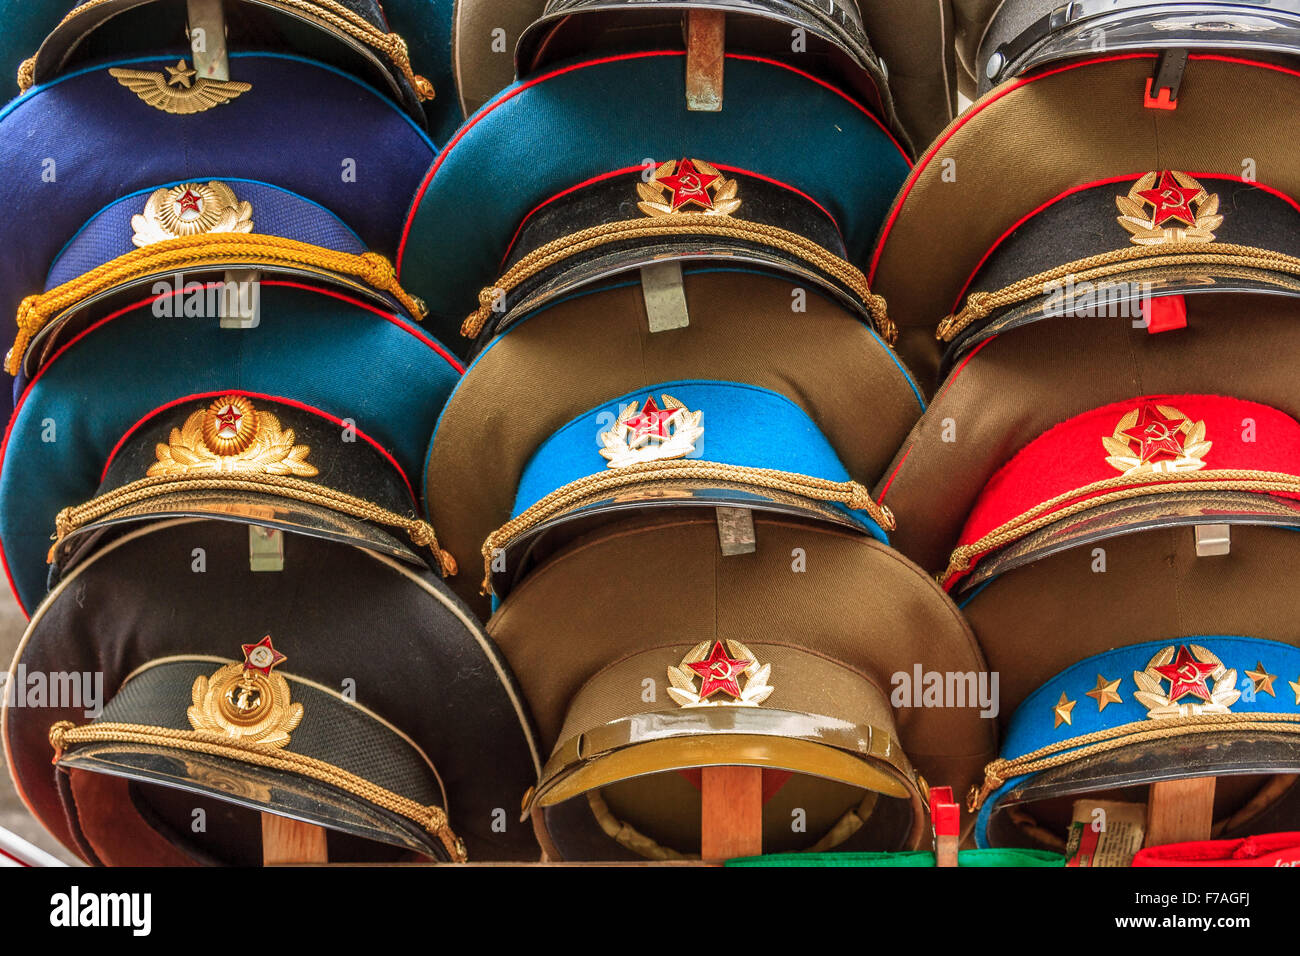 Hats worn by police of East Germany - Stock Image